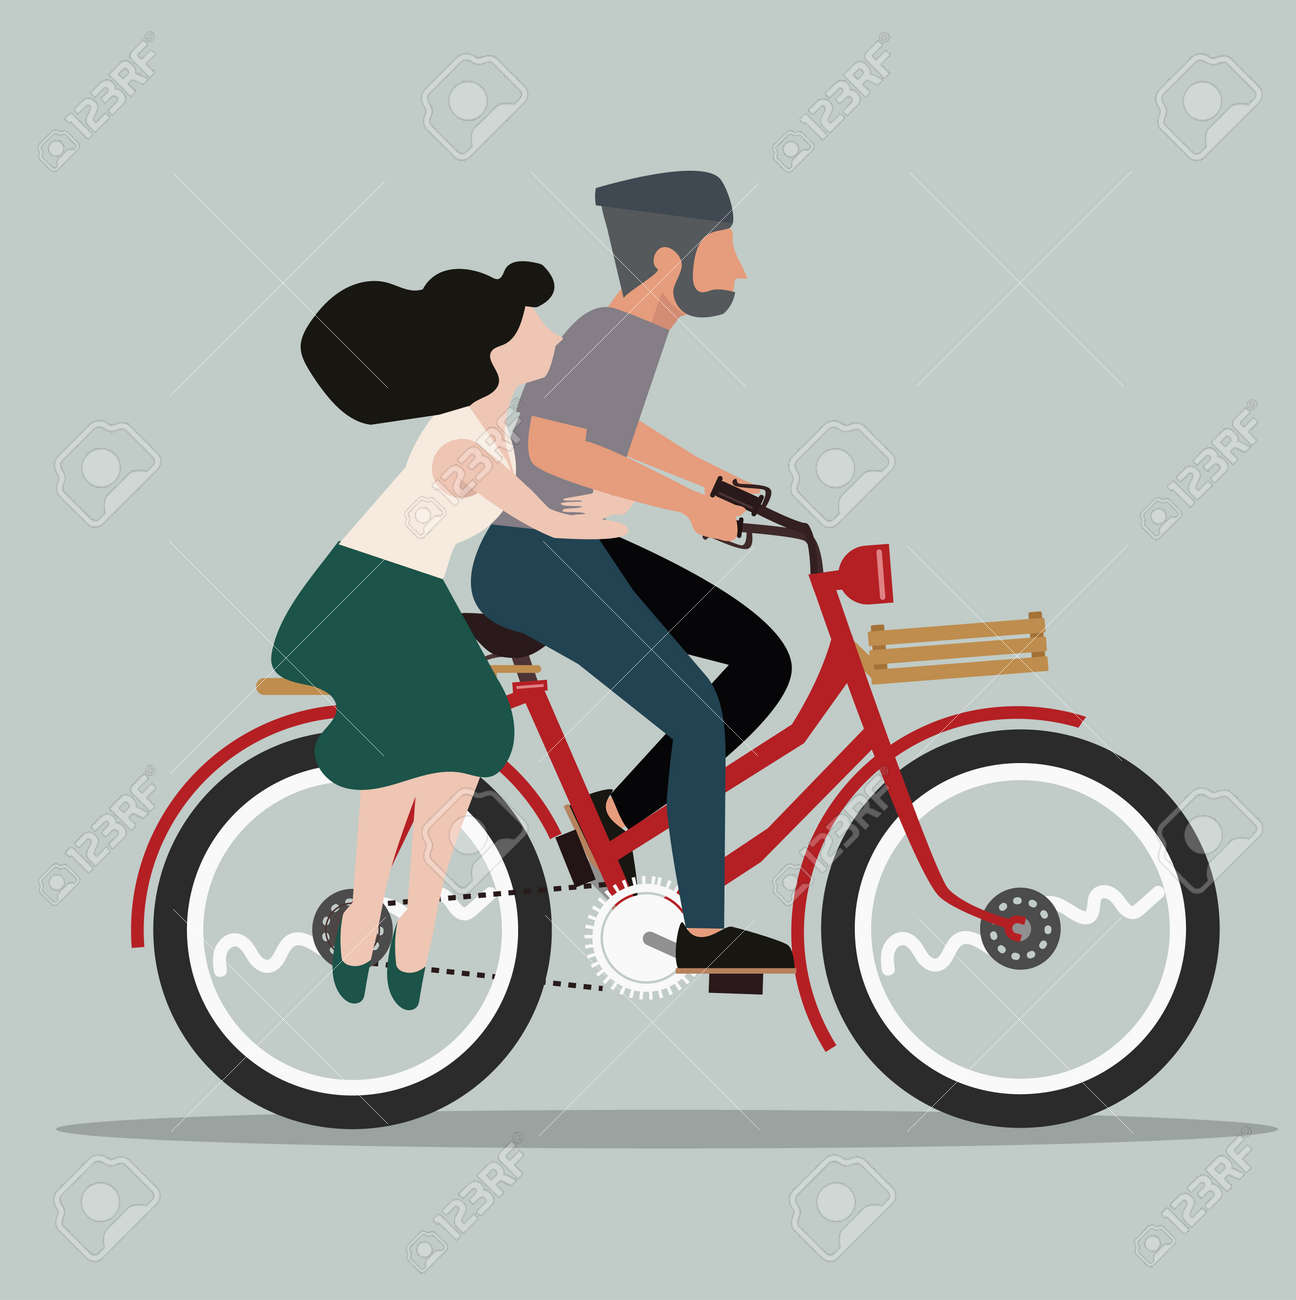 People Couple in love riding bicycle flat - 168920462